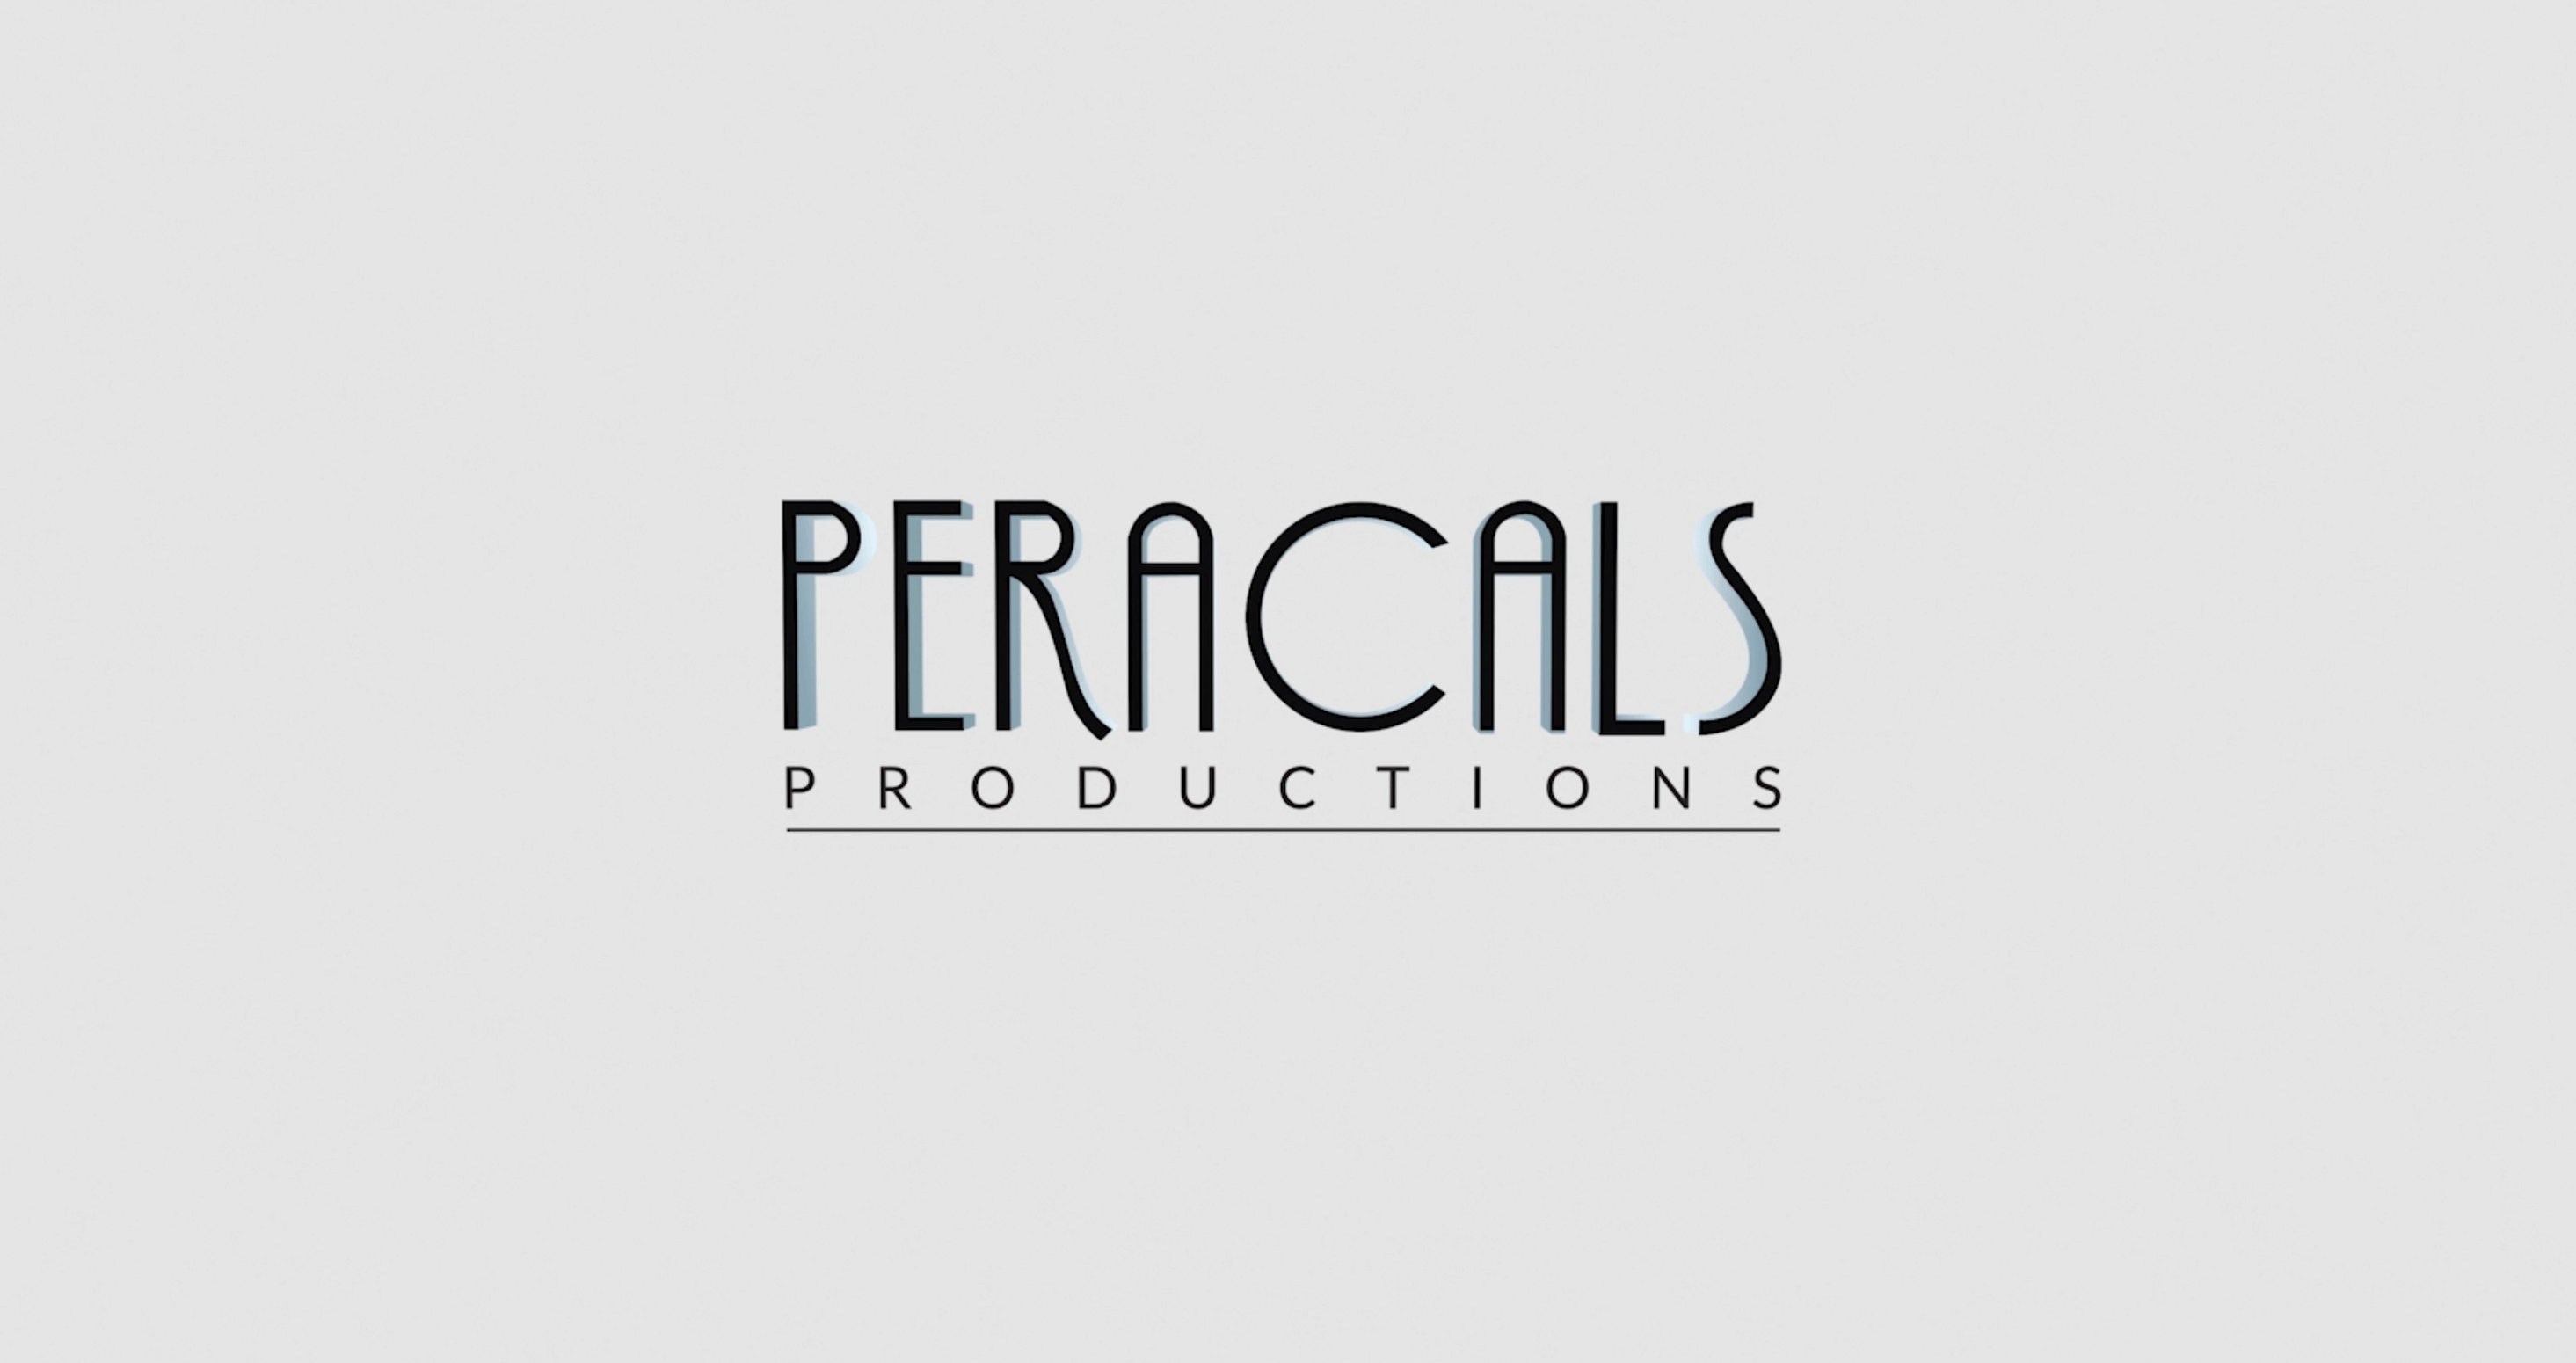 Peracals Productions